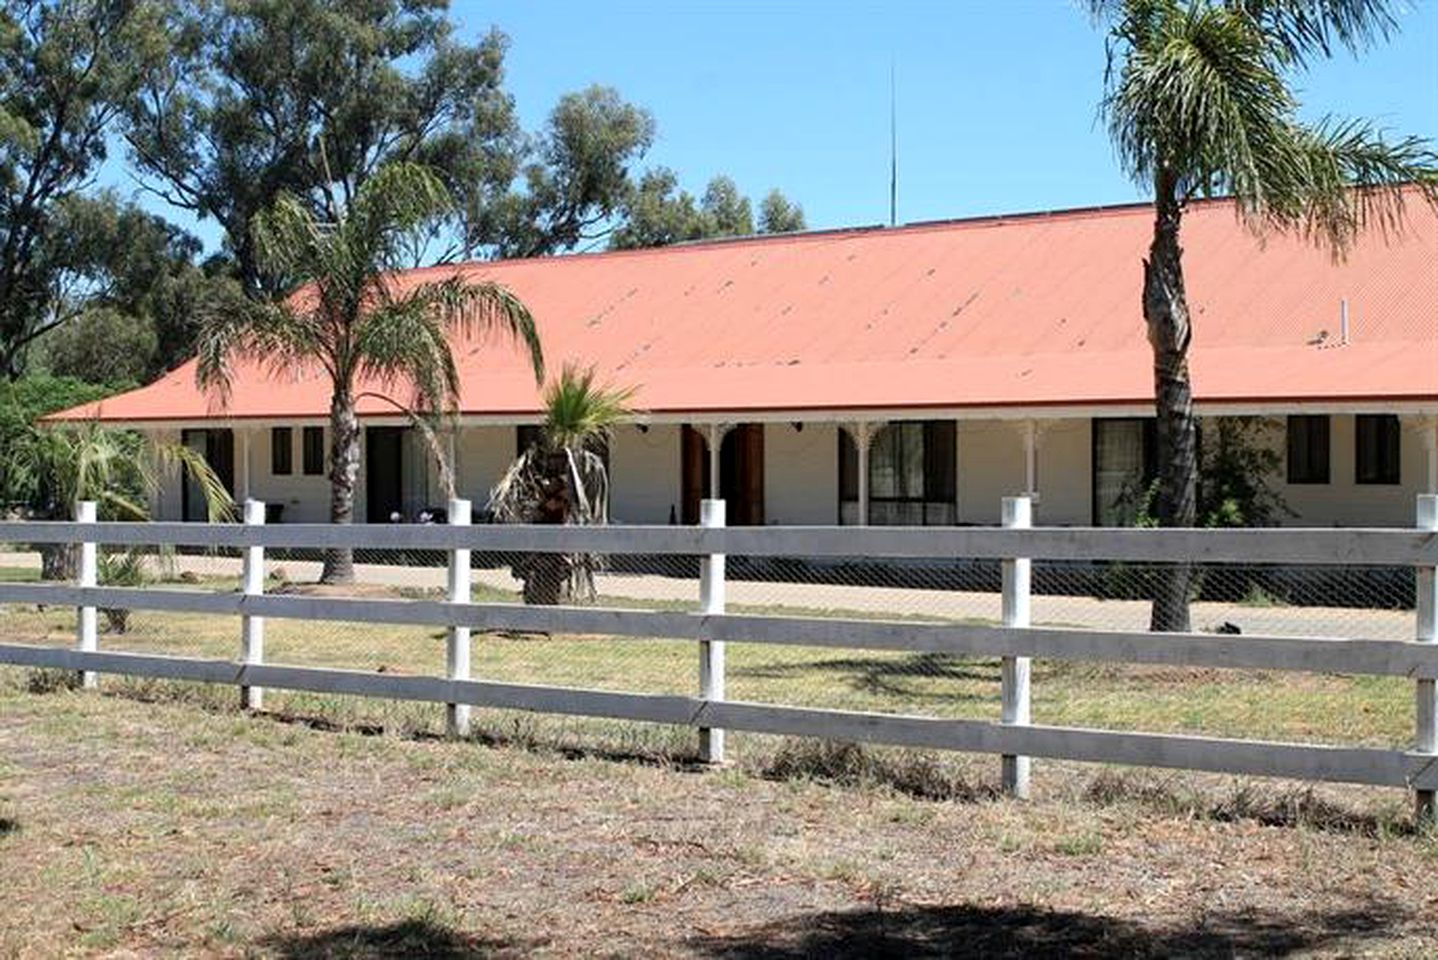 Cottages (Yerong Creek, New South Wales, Australia)